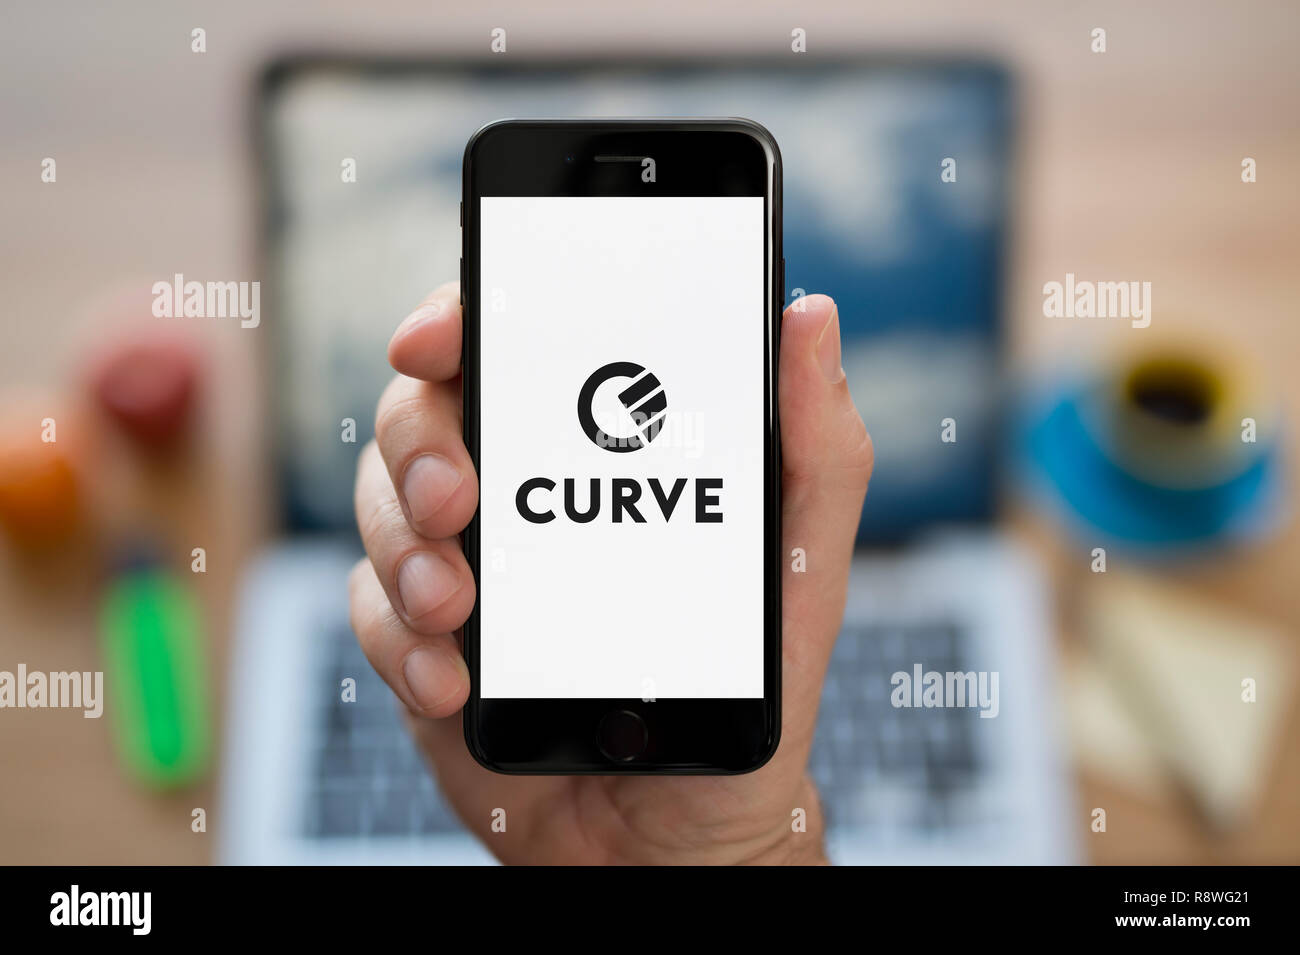 Un homme se penche sur son iPhone qui affiche le logo de la courbe (usage éditorial uniquement). Photo Stock